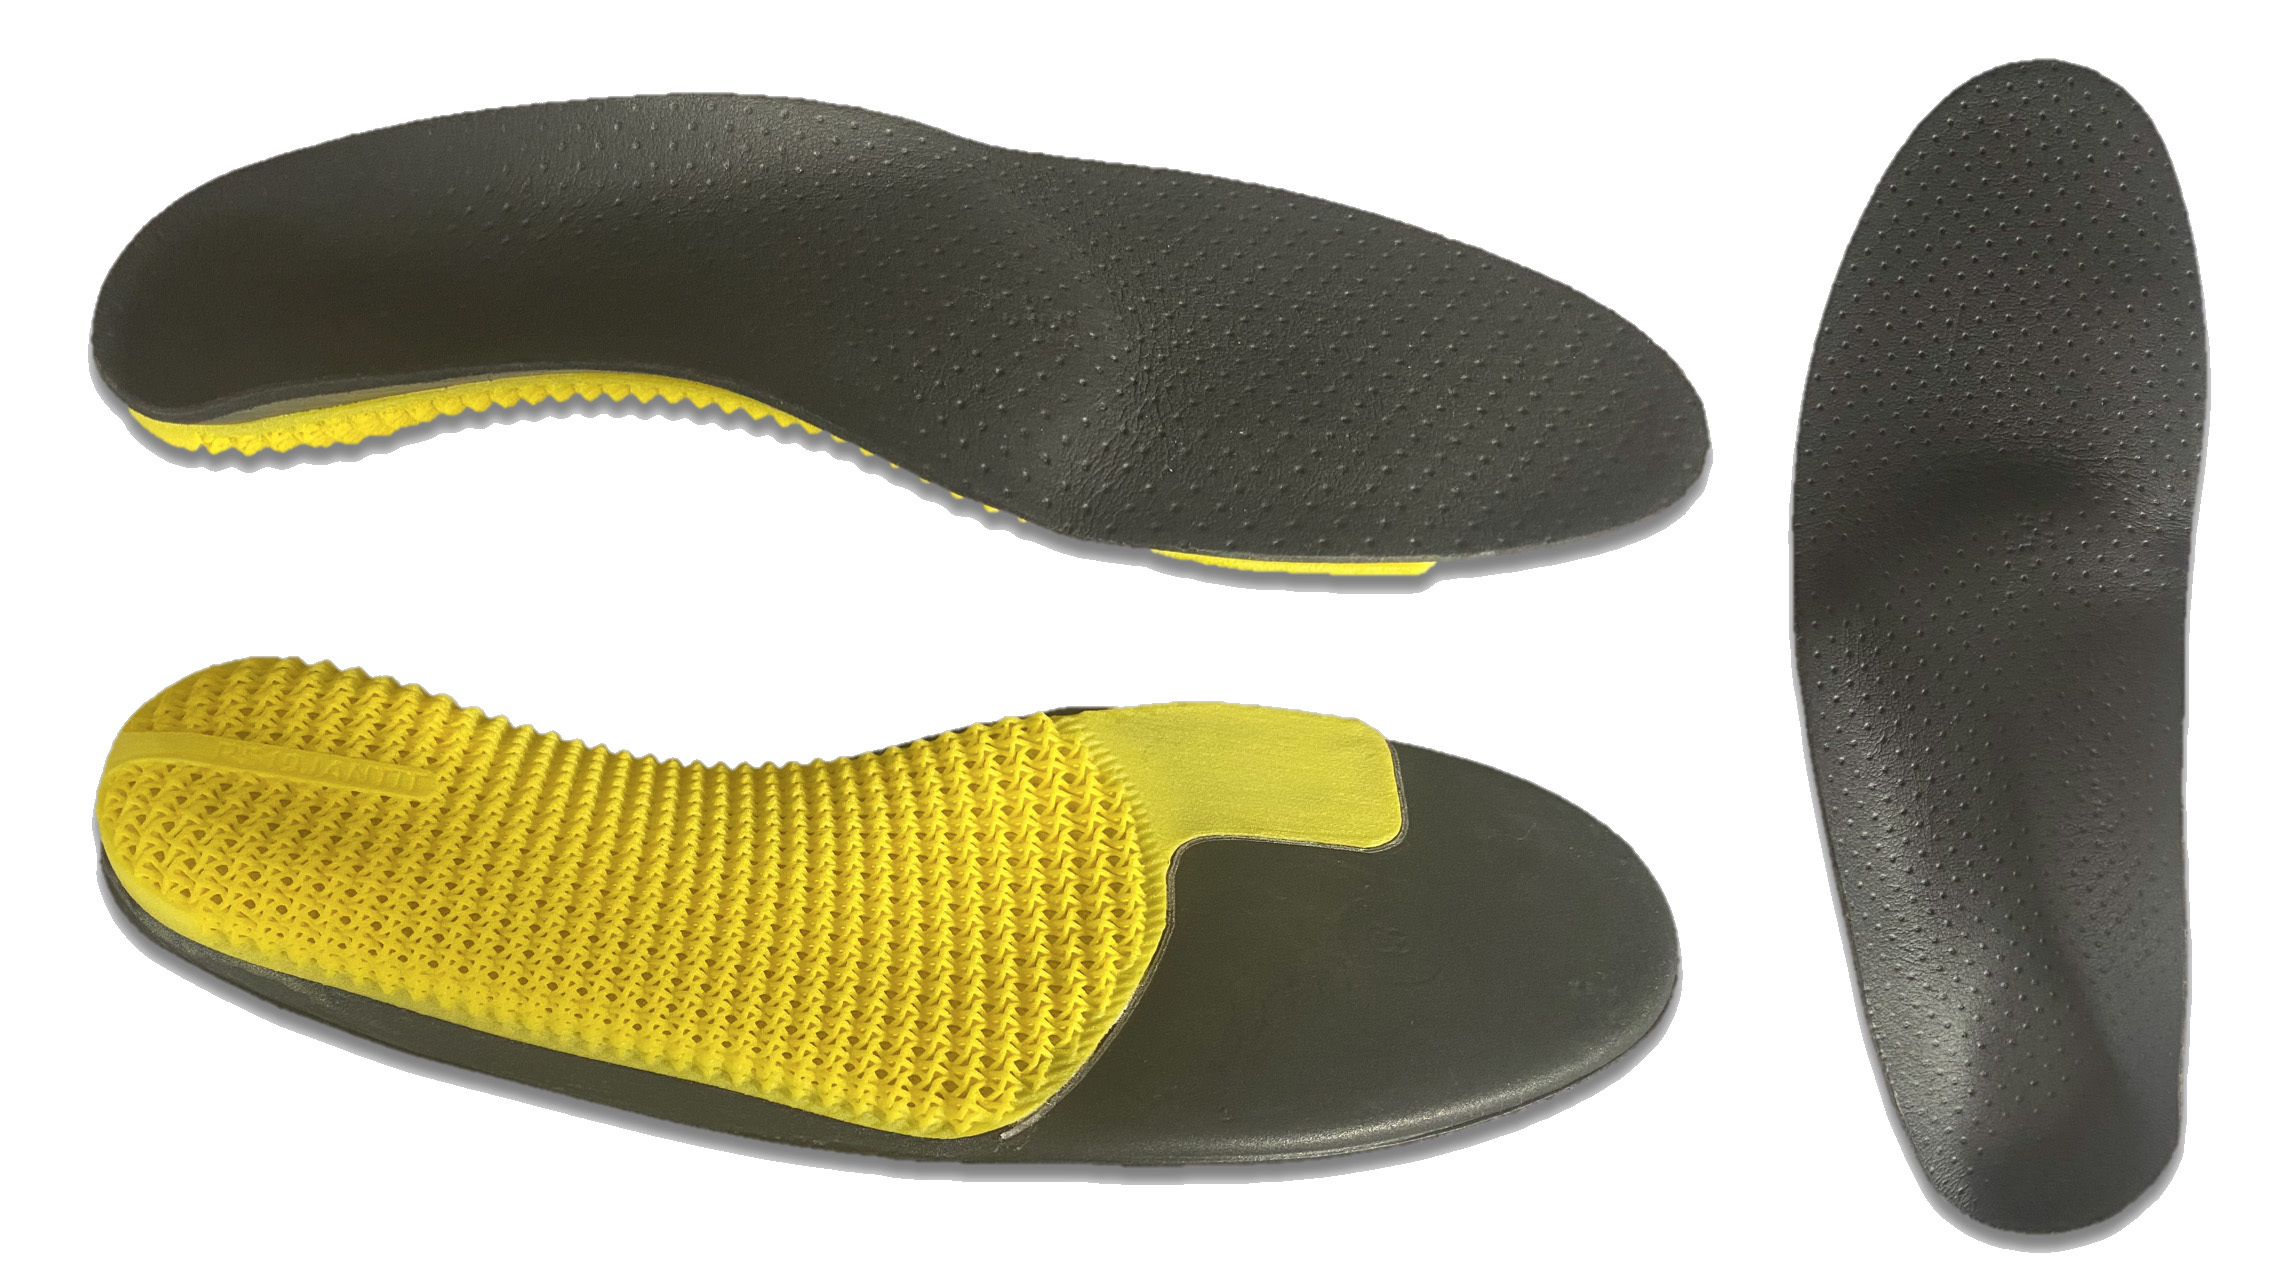 Orthotics and insoles for fell walkers